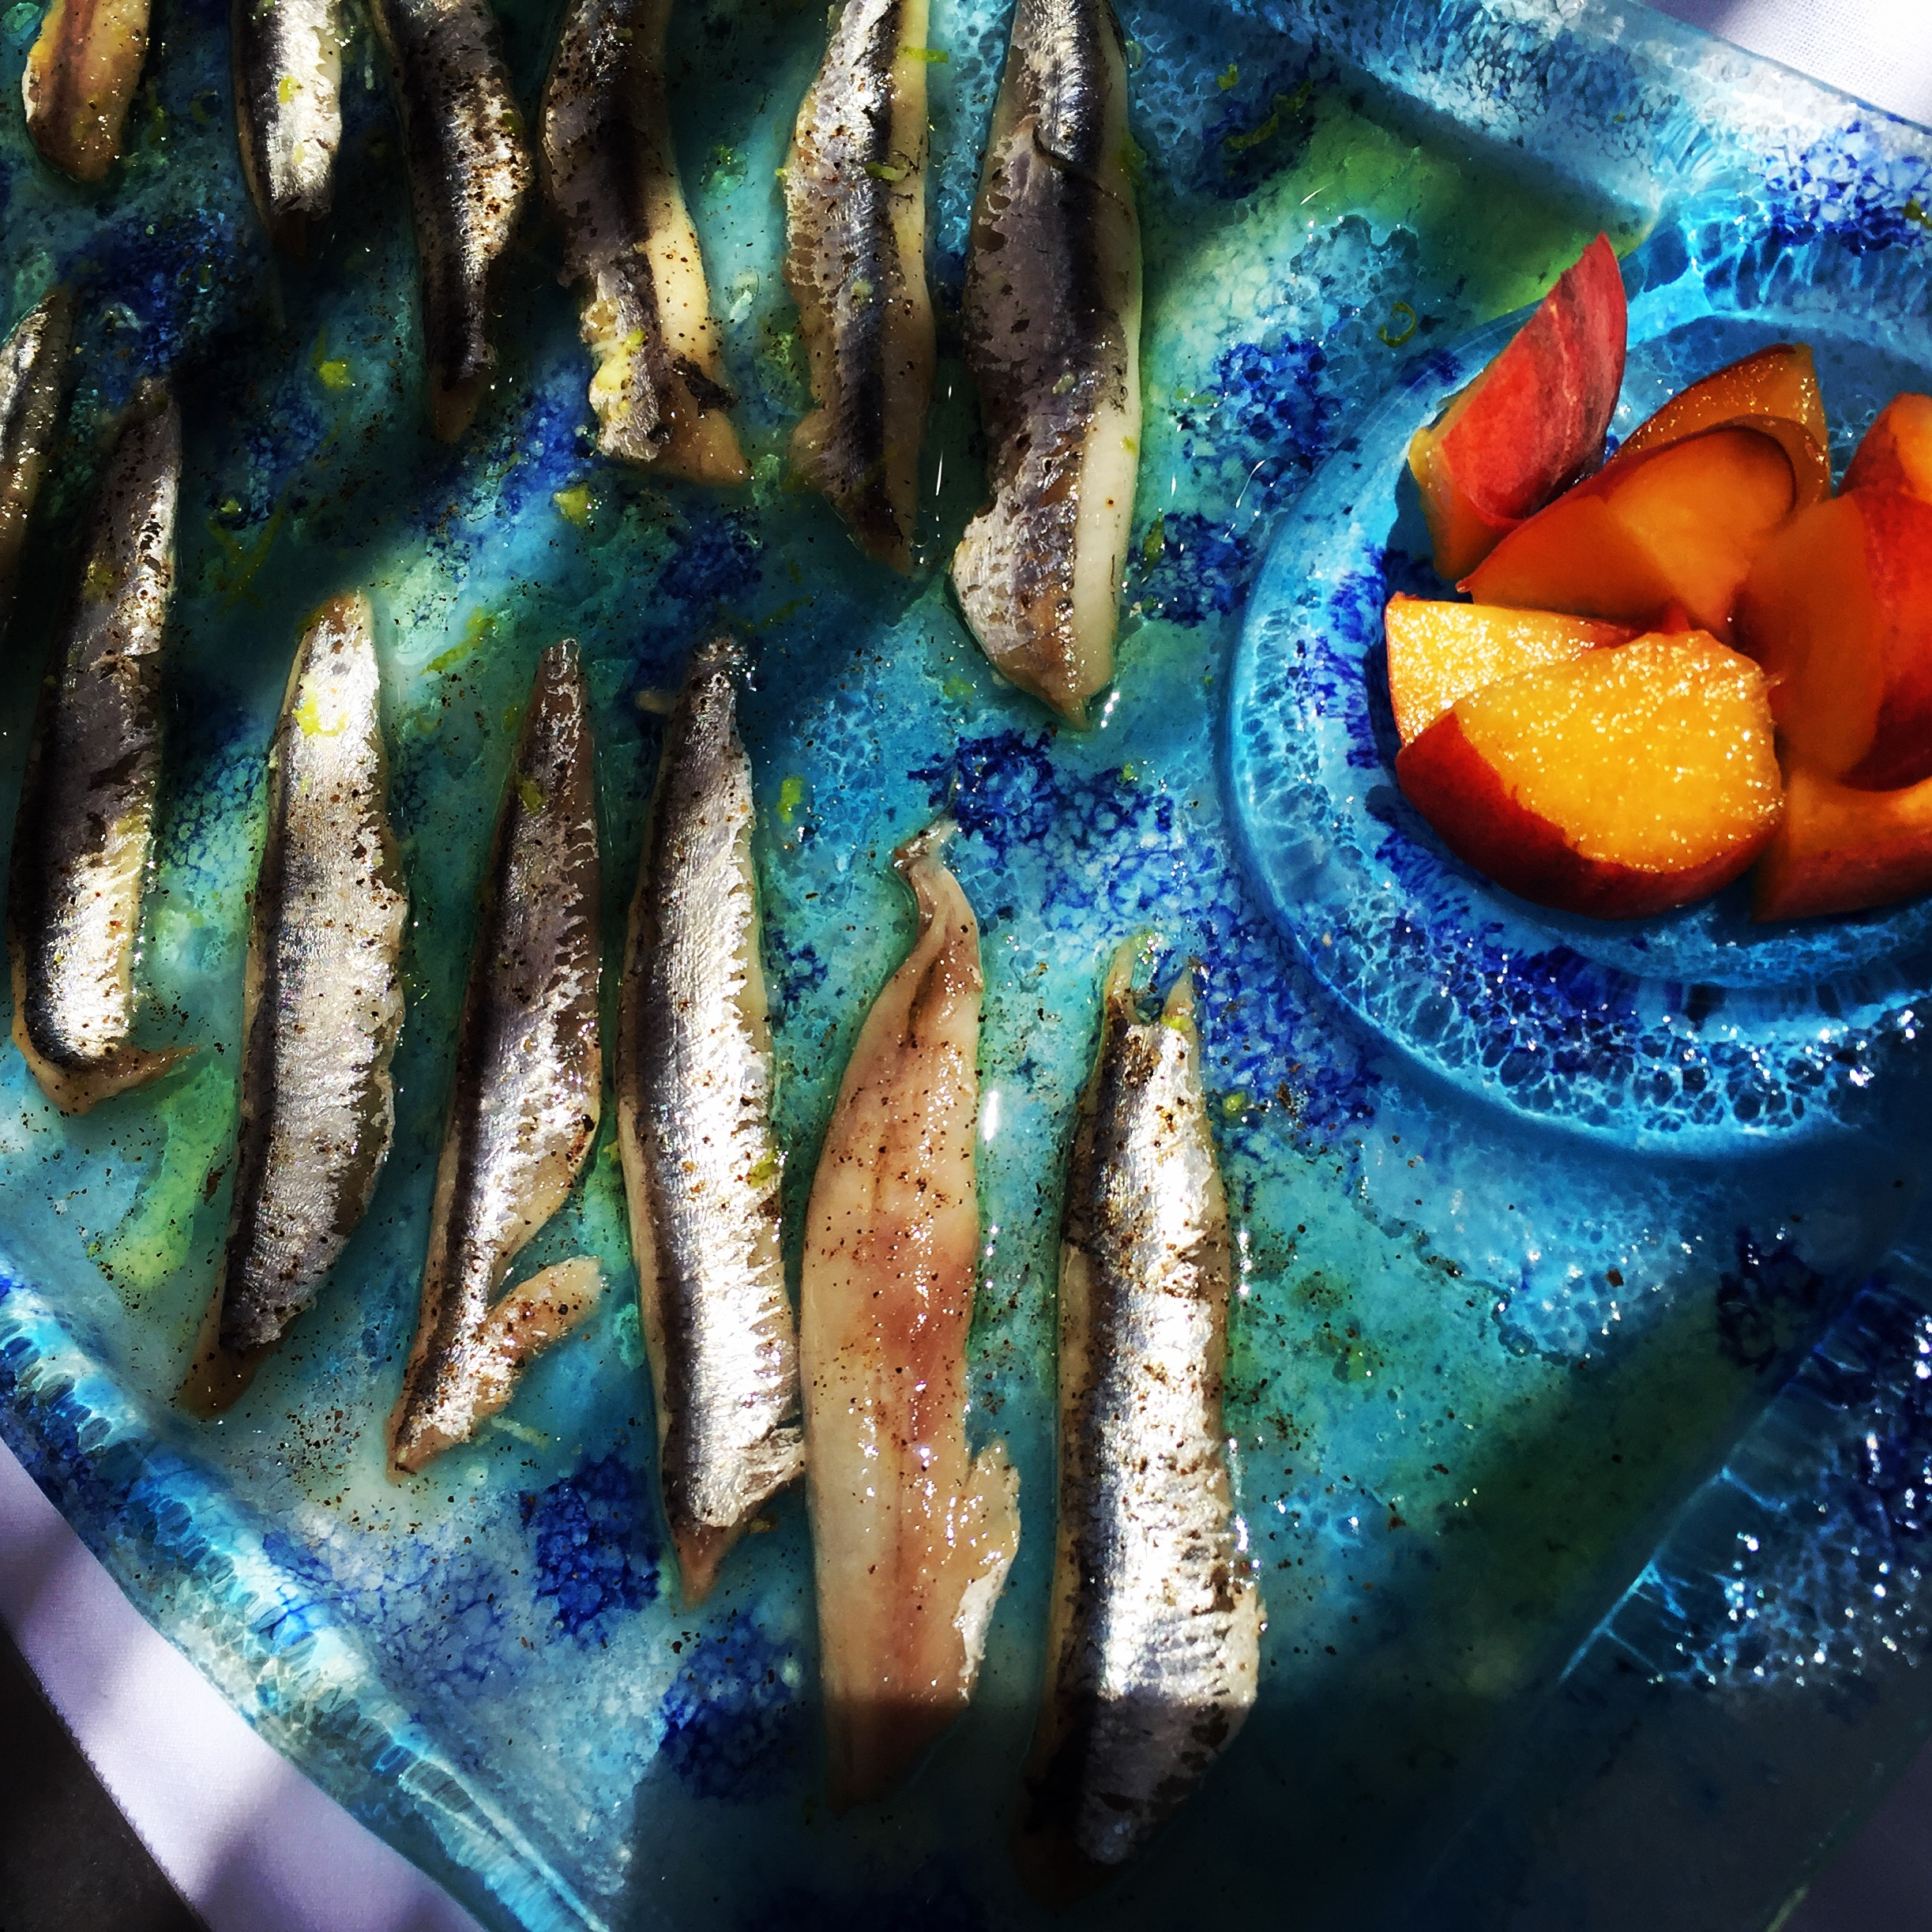 Marinated anchovies and peaches - Marzamemi